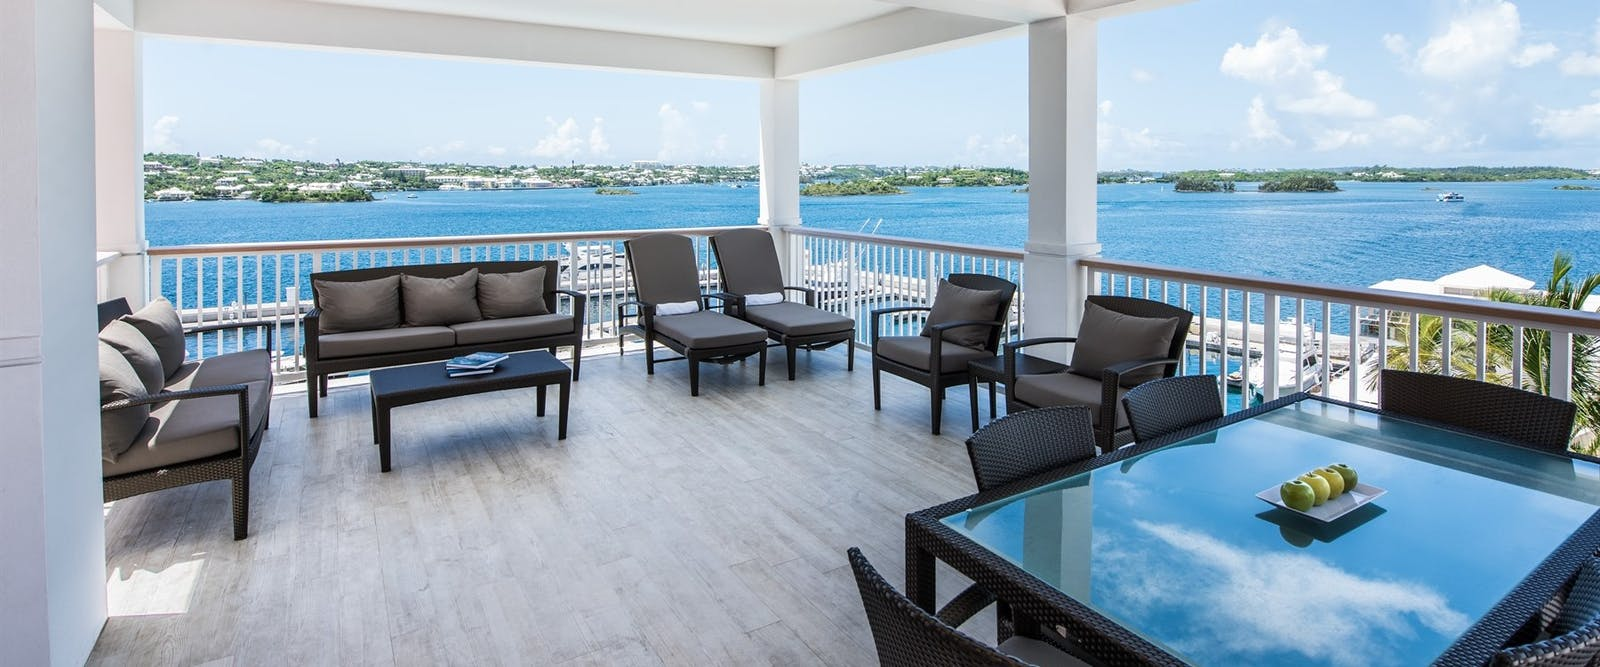 Balcony in Gold Suite at Hamilton Princess & Beach Club, Bermuda